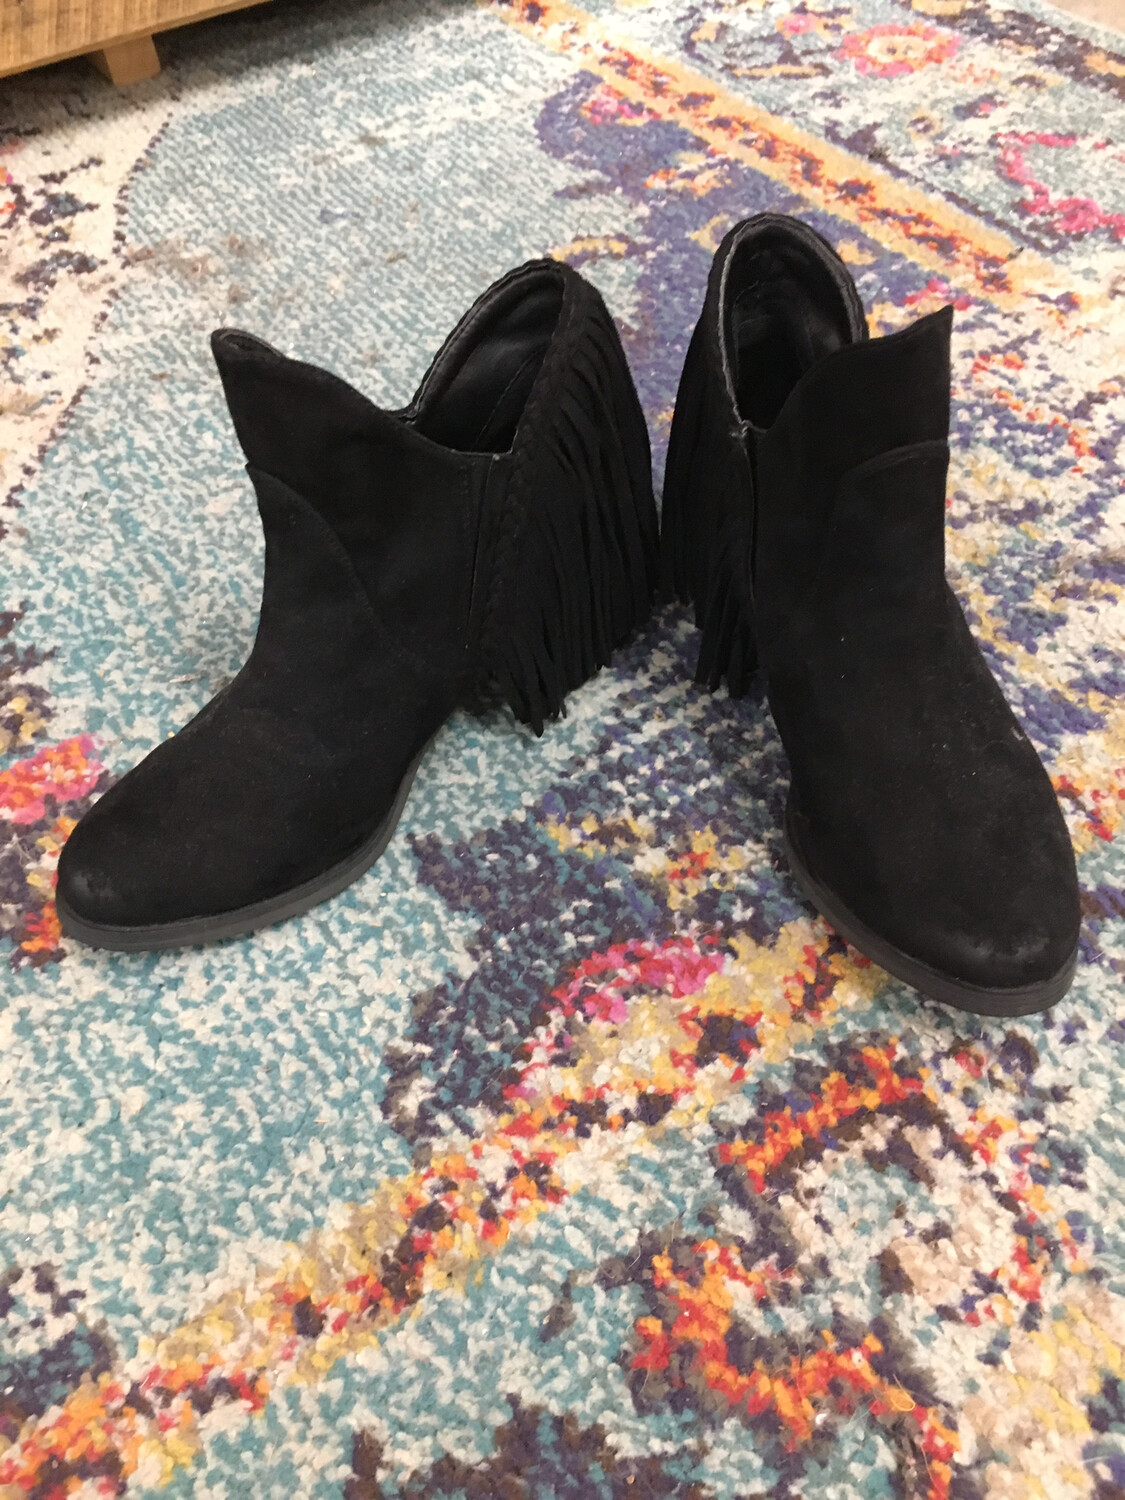 Hot Rated Black Fringe Booties - Size 7